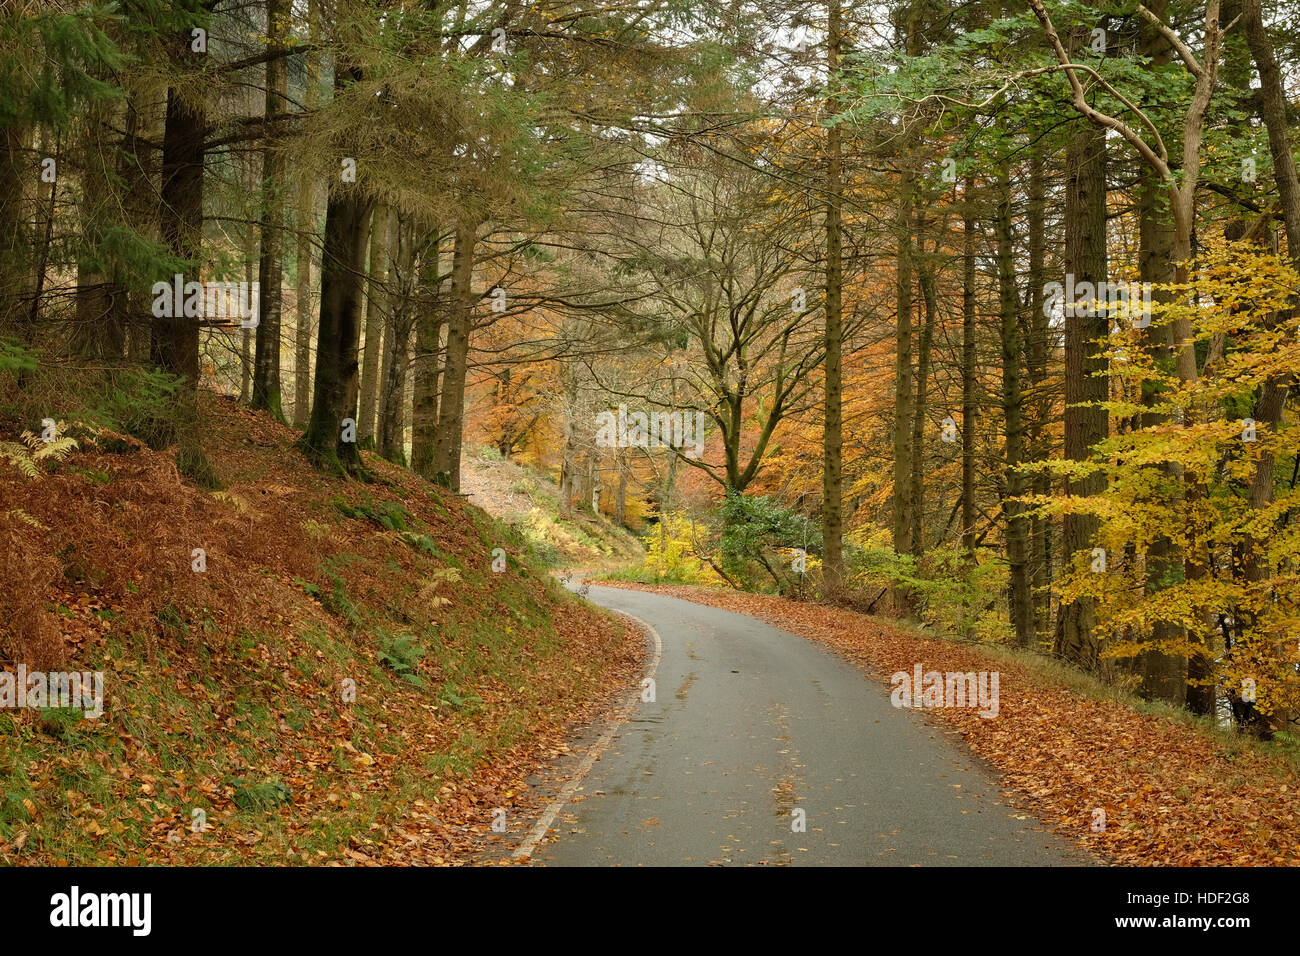 Road through a forest in autumn - Stock Image